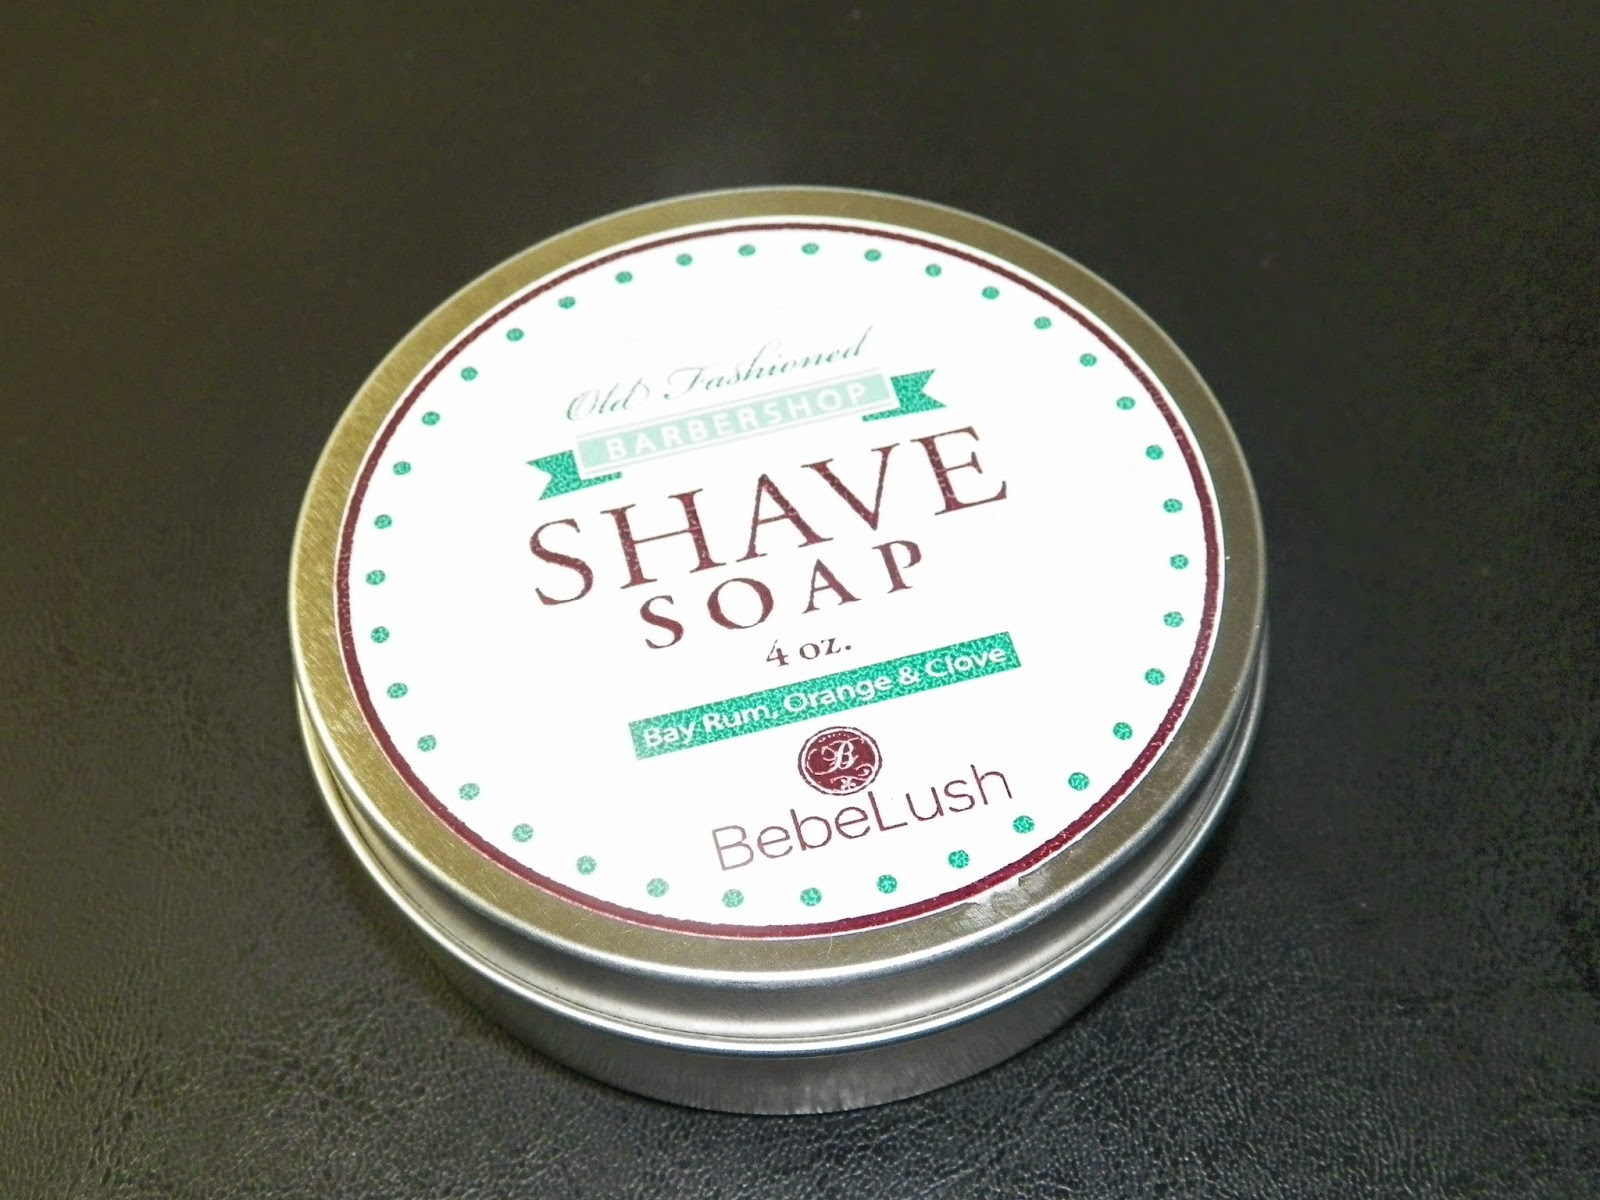 Mygreatfinds Bebelush Barbershop Shave Soap Bar In A Jar